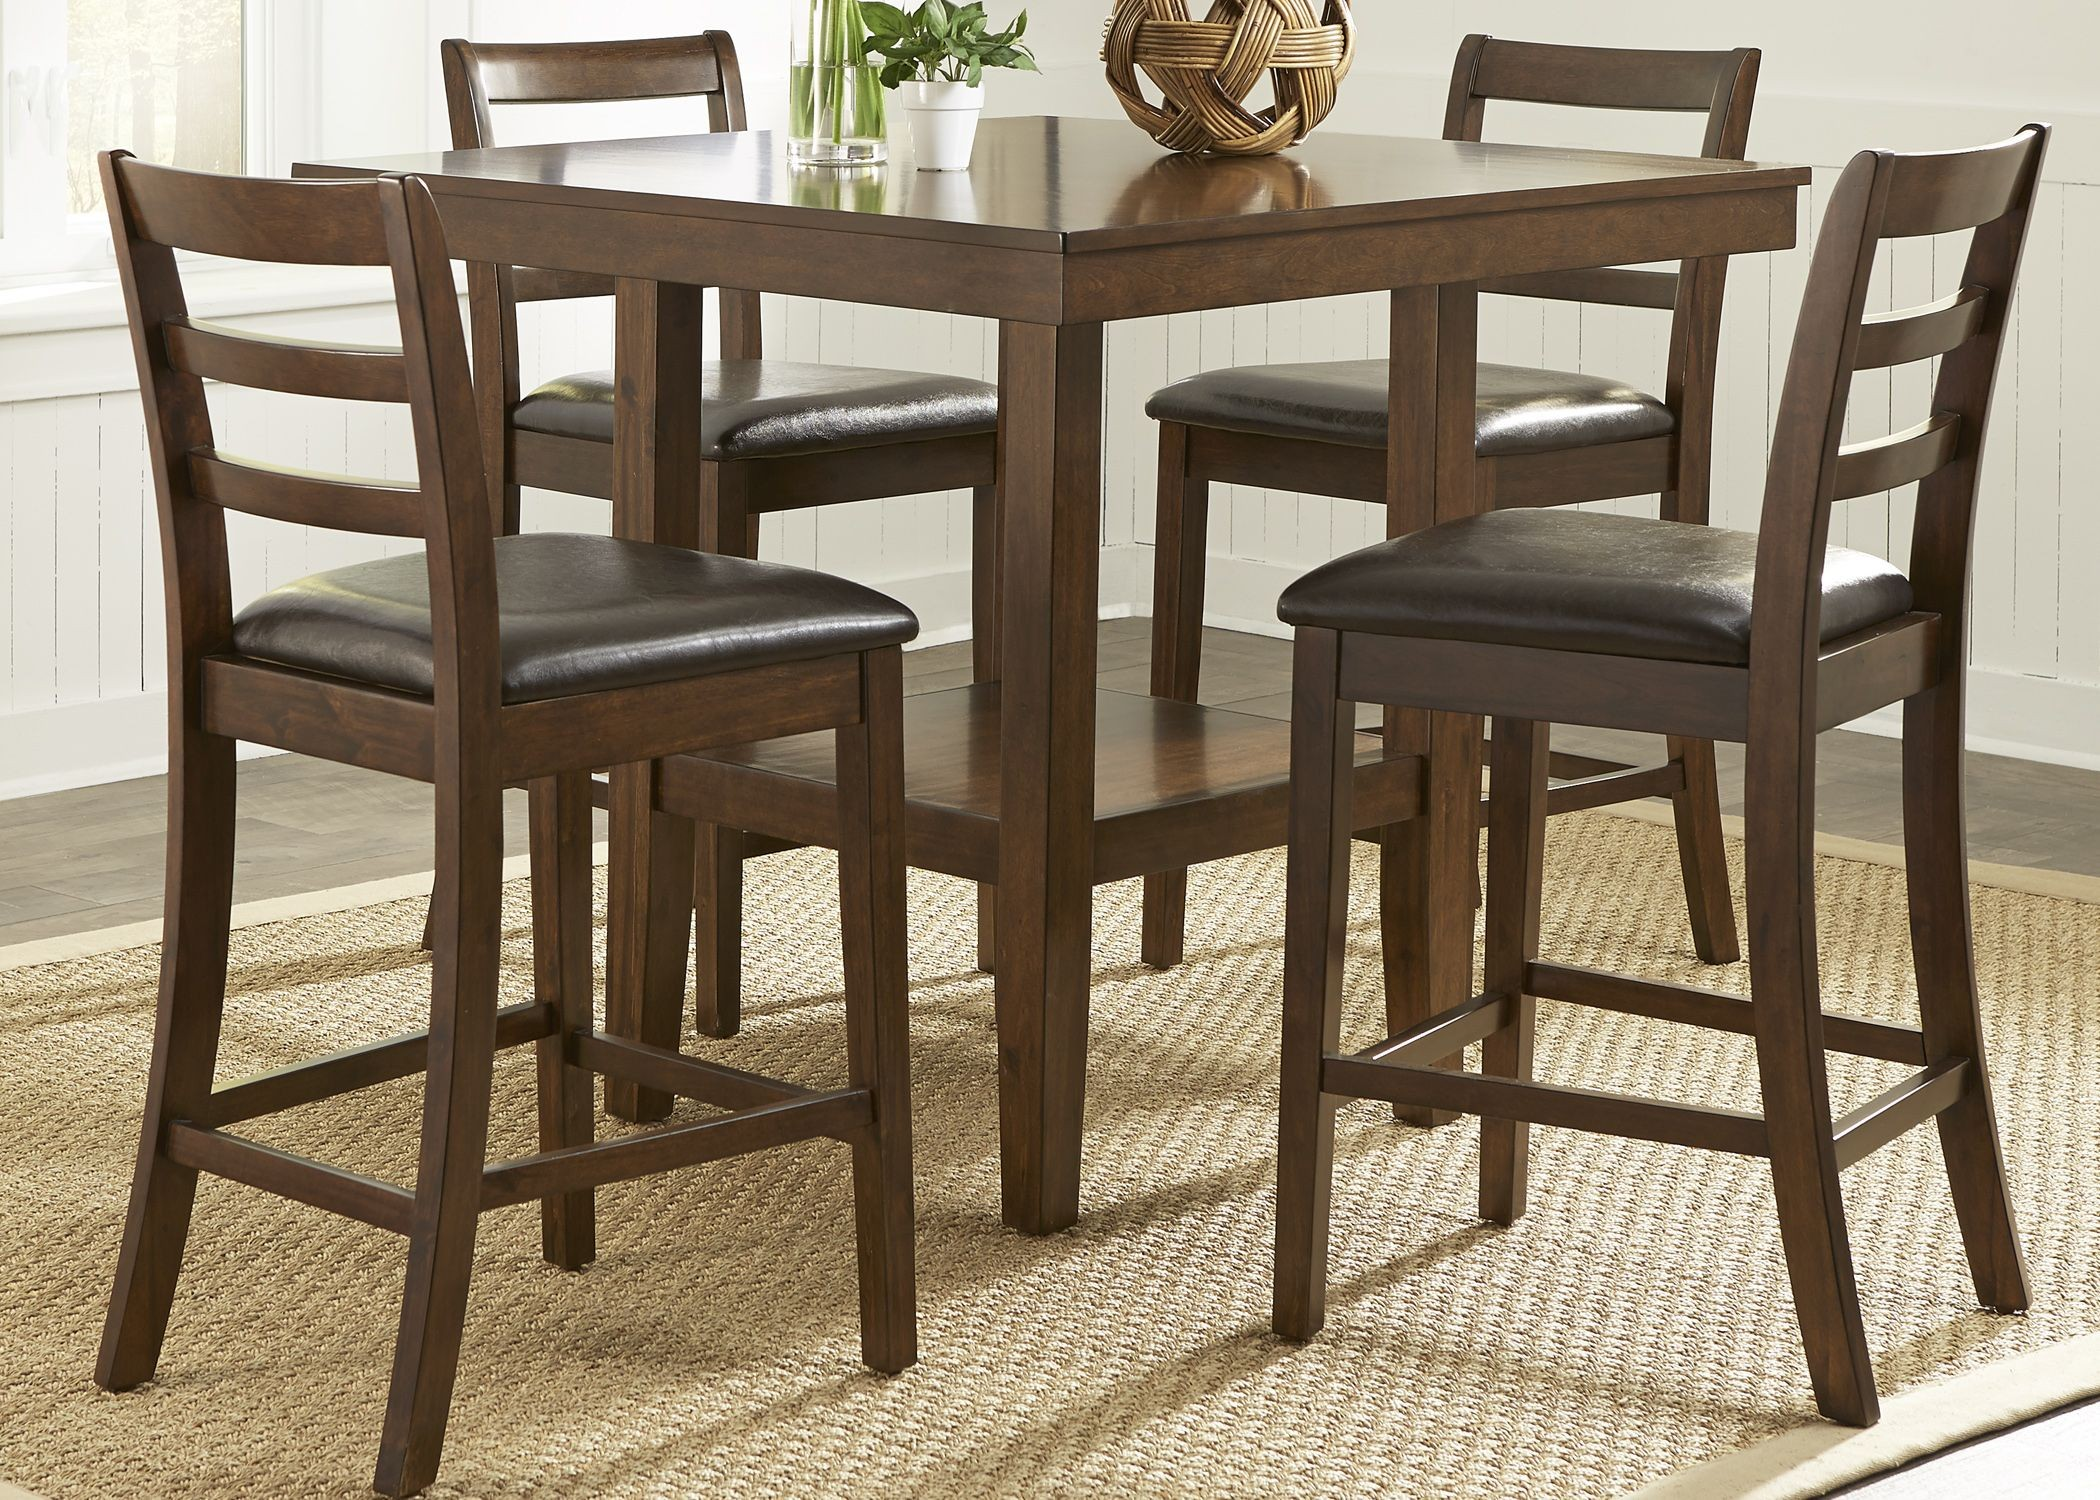 Bradshaw Russet 5 Piece Gathering Dining Room Set From Liberty